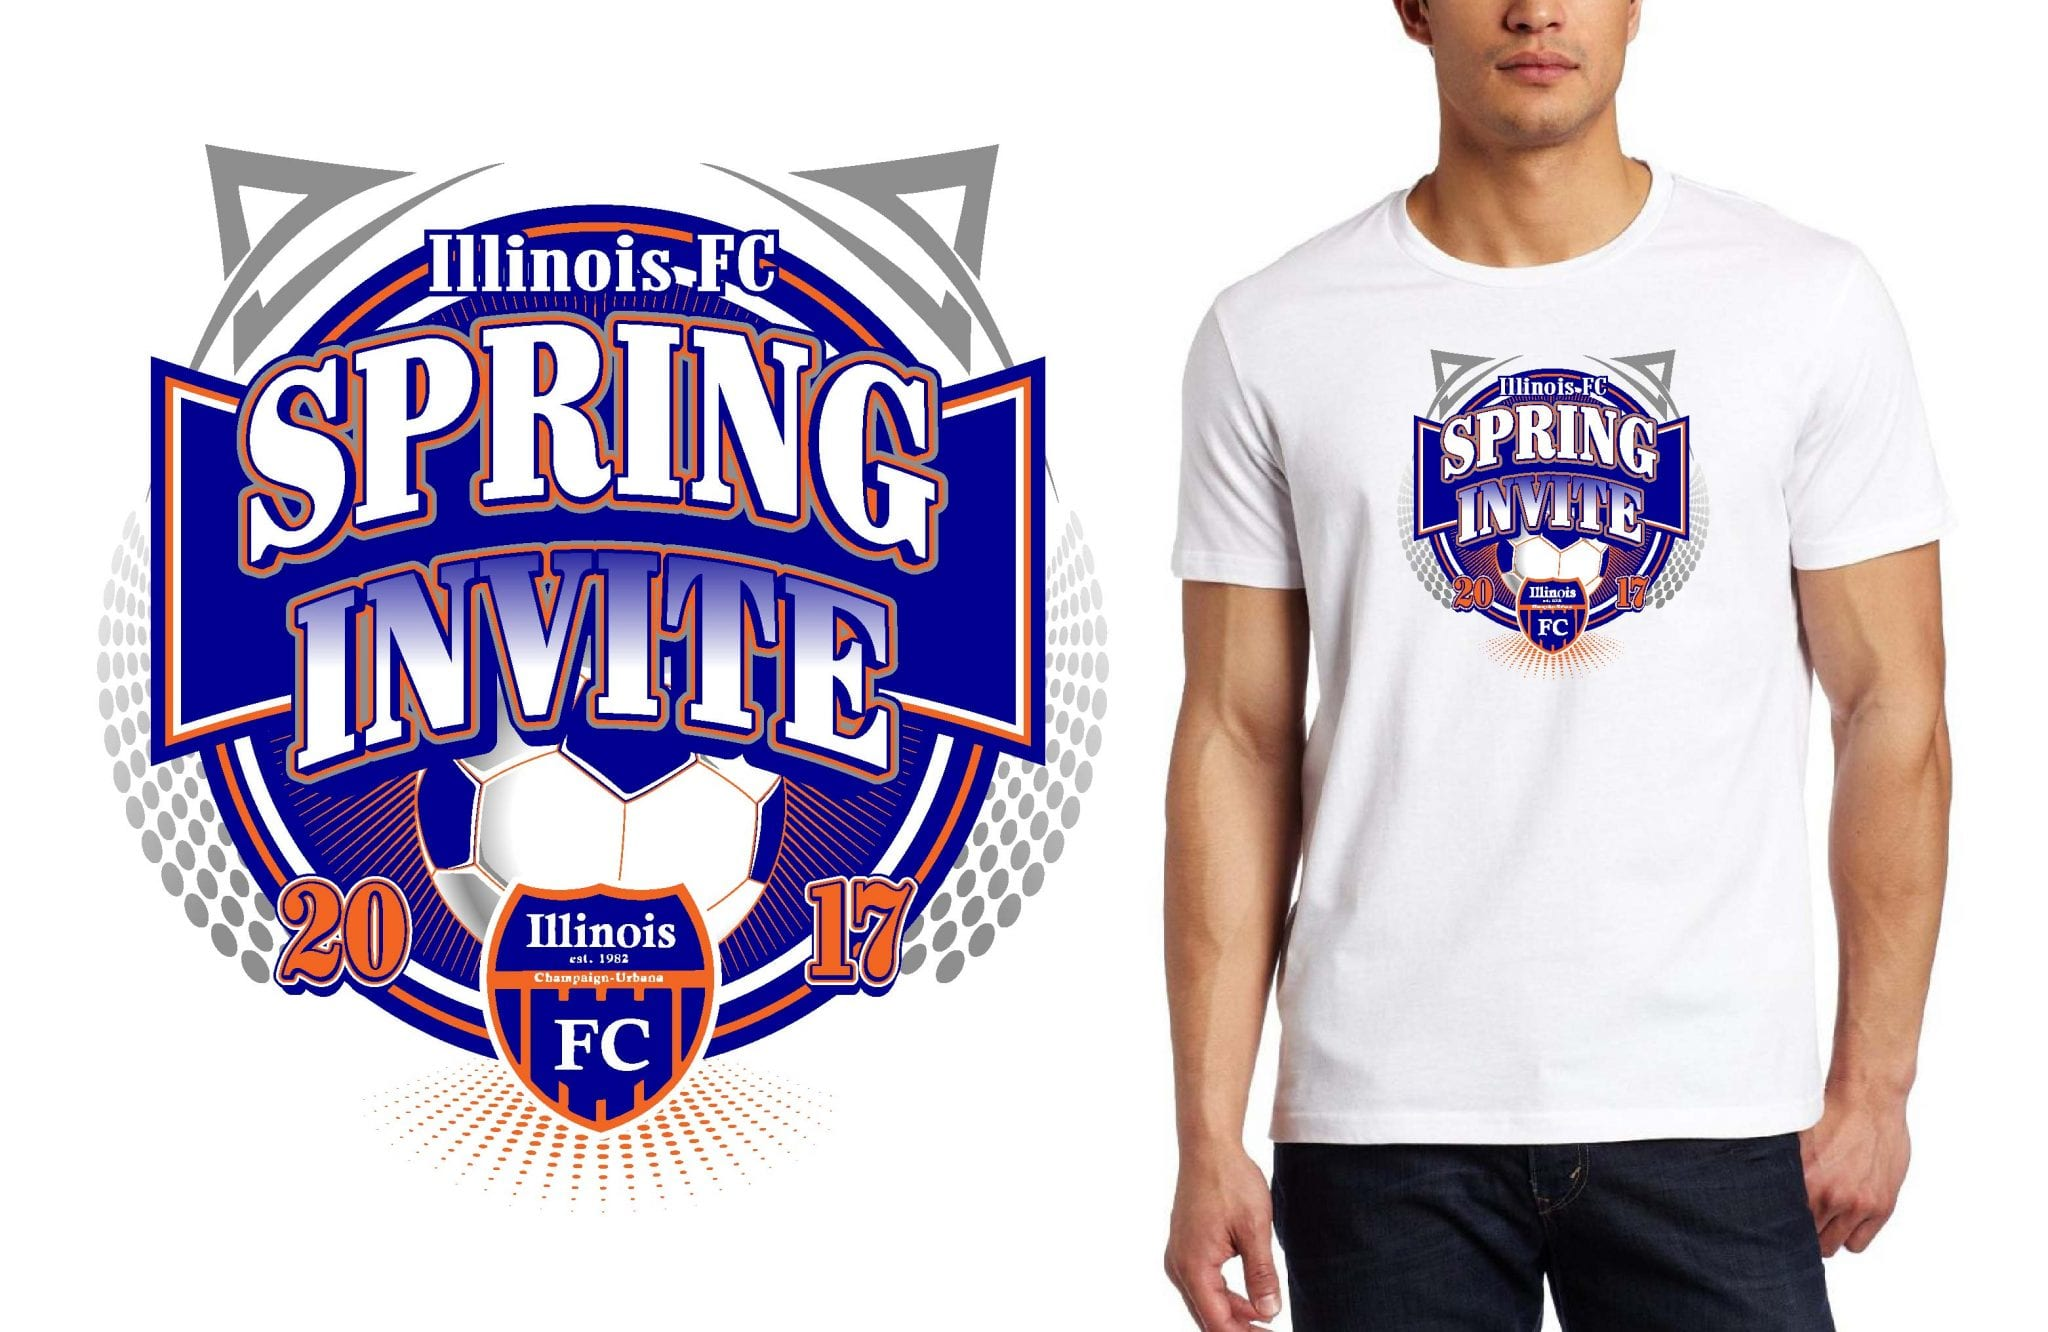 SOCCER LOGO for Illinois-FC-Spring-Invite T-SHIRT UrArtStudio